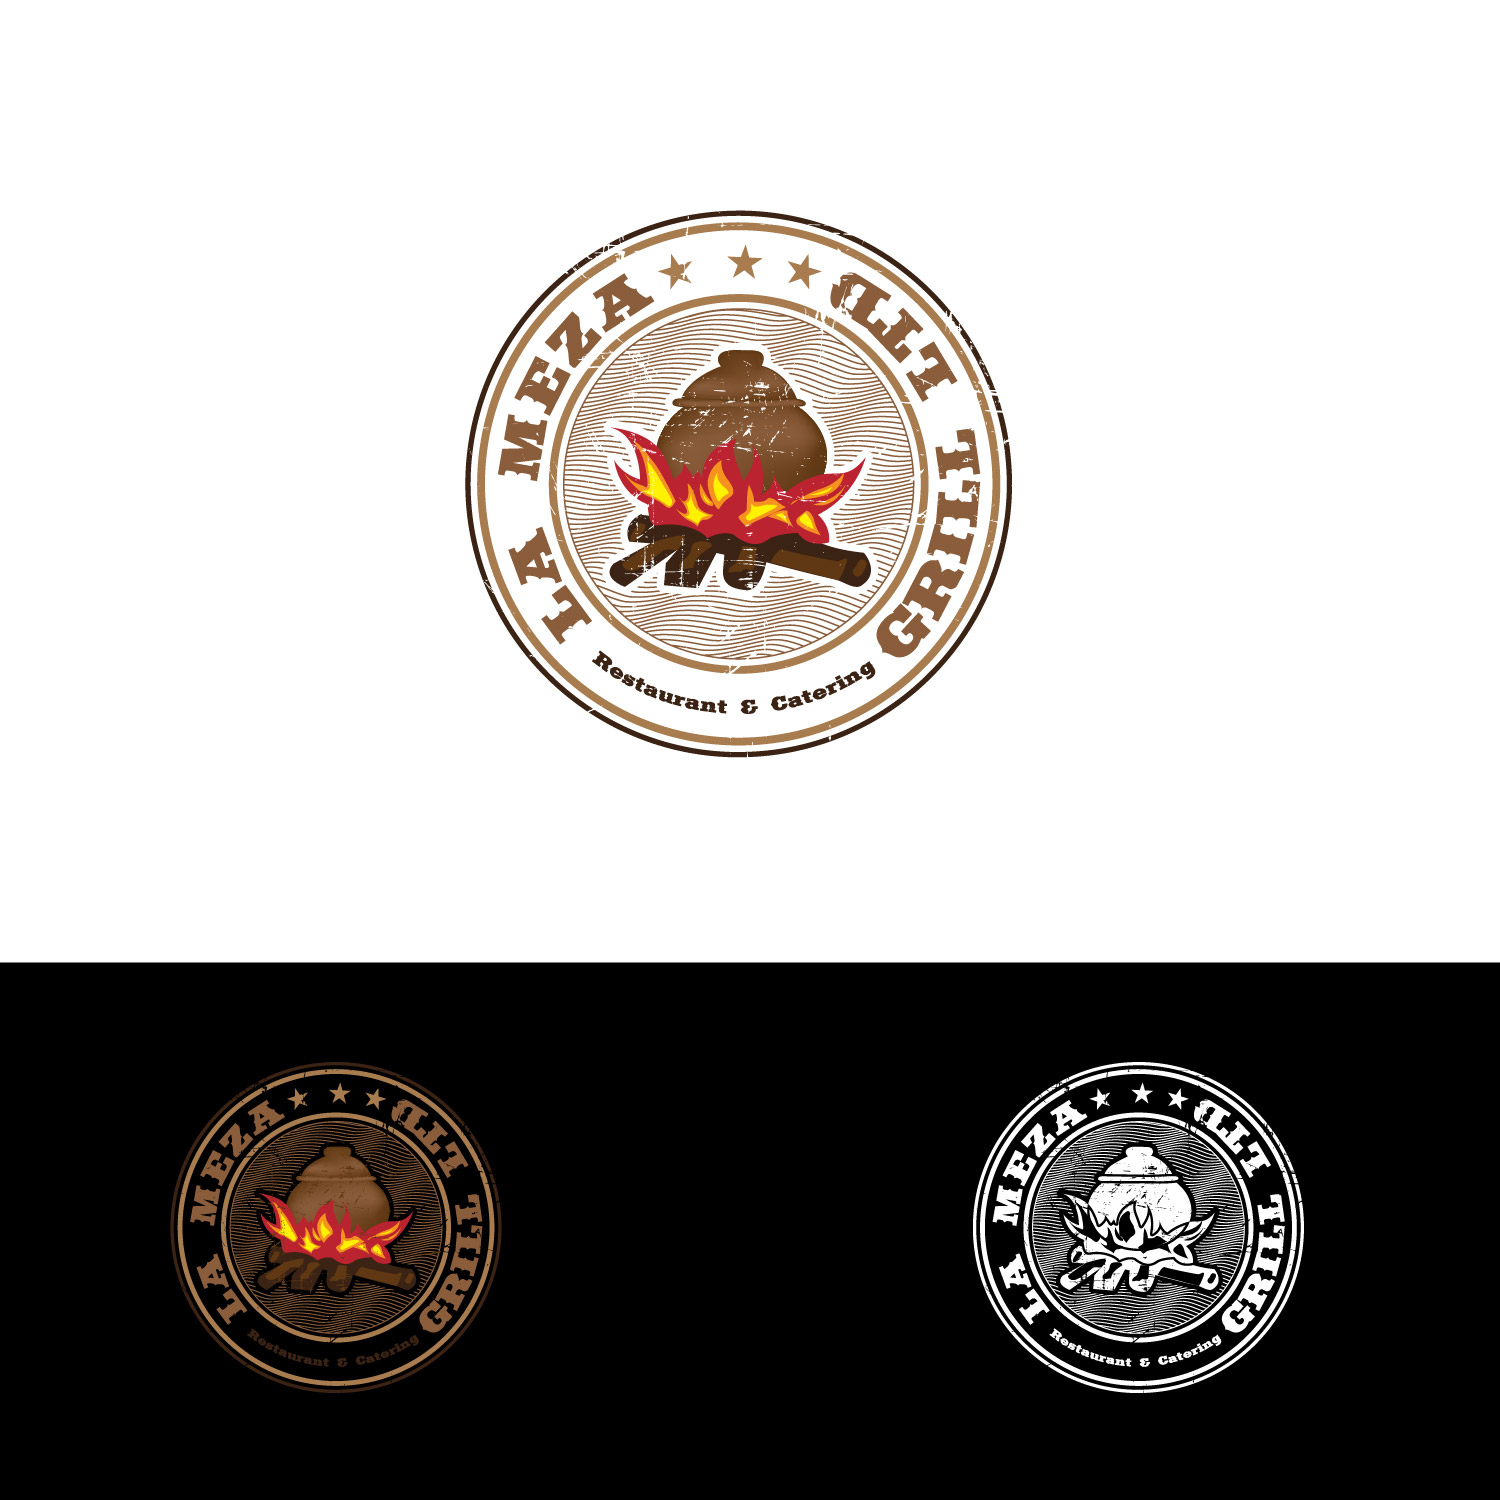 Logo Design by lagalag - Entry No. 33 in the Logo Design Contest Inspiring Logo Design for La Meza Grill Ltd..